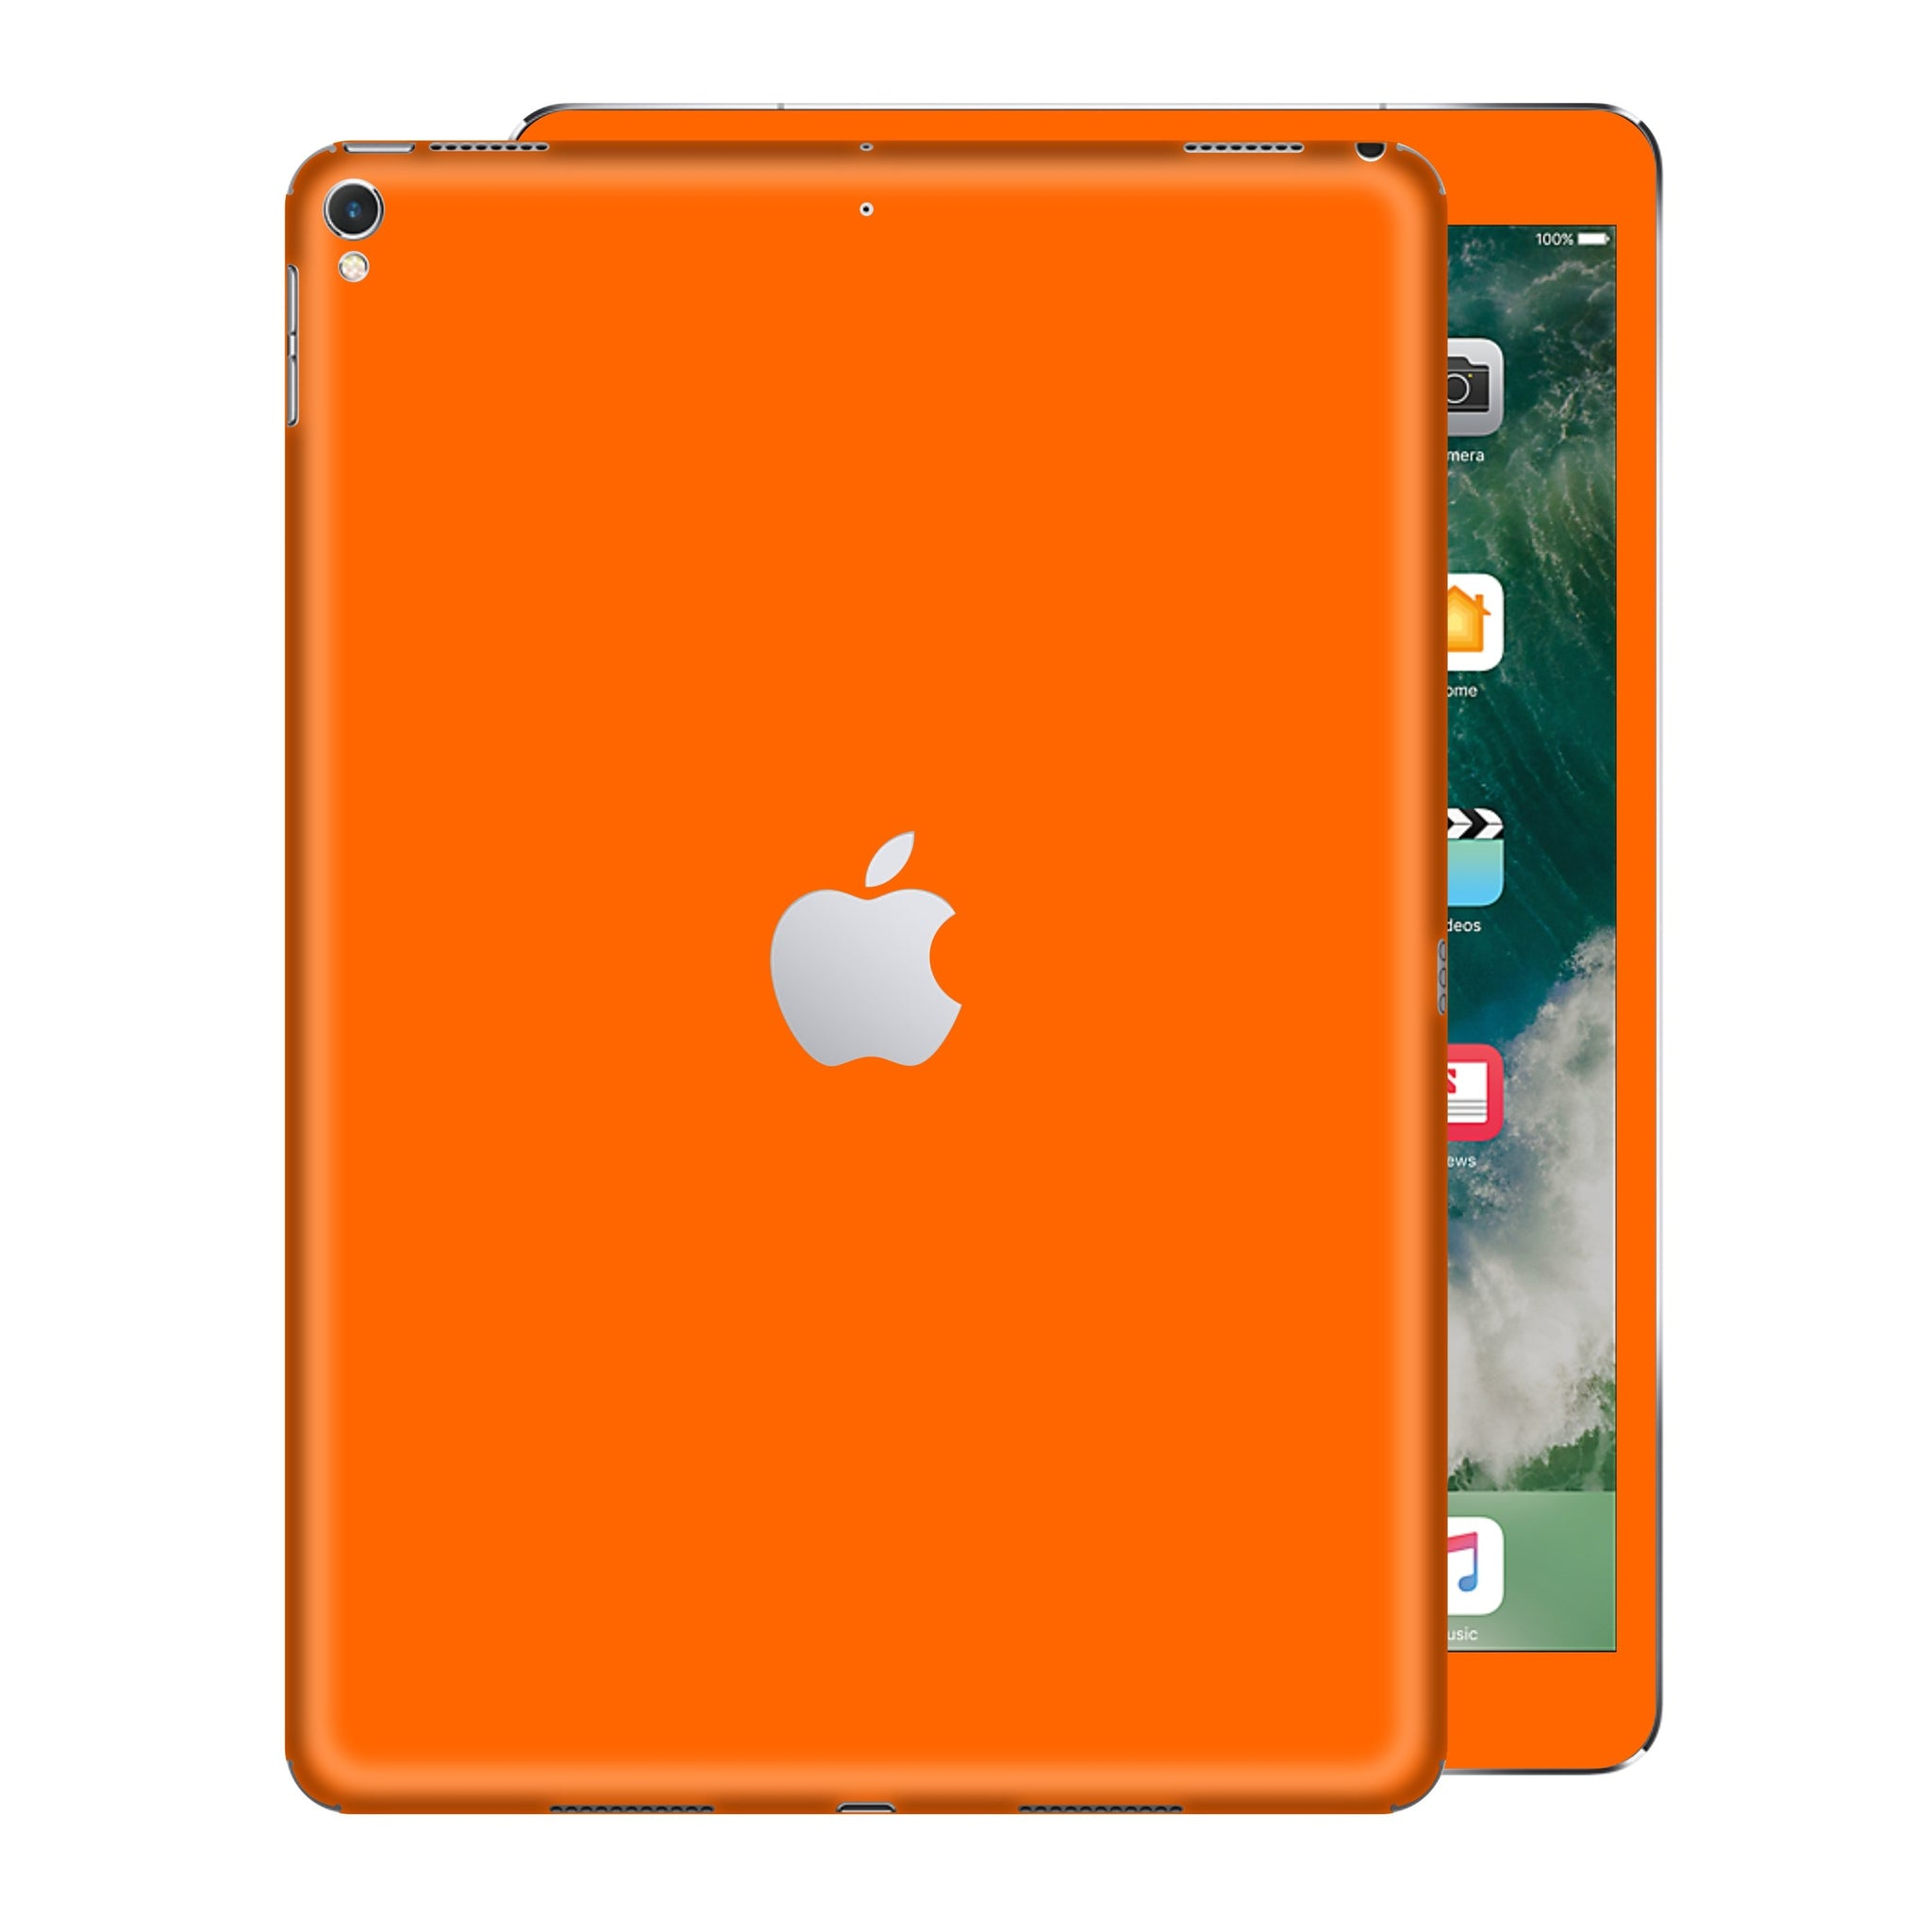 iPad PRO 12.9 inch 2017 Glossy ORANGE Skin Wrap Sticker Decal Cover Protector by EasySkinz